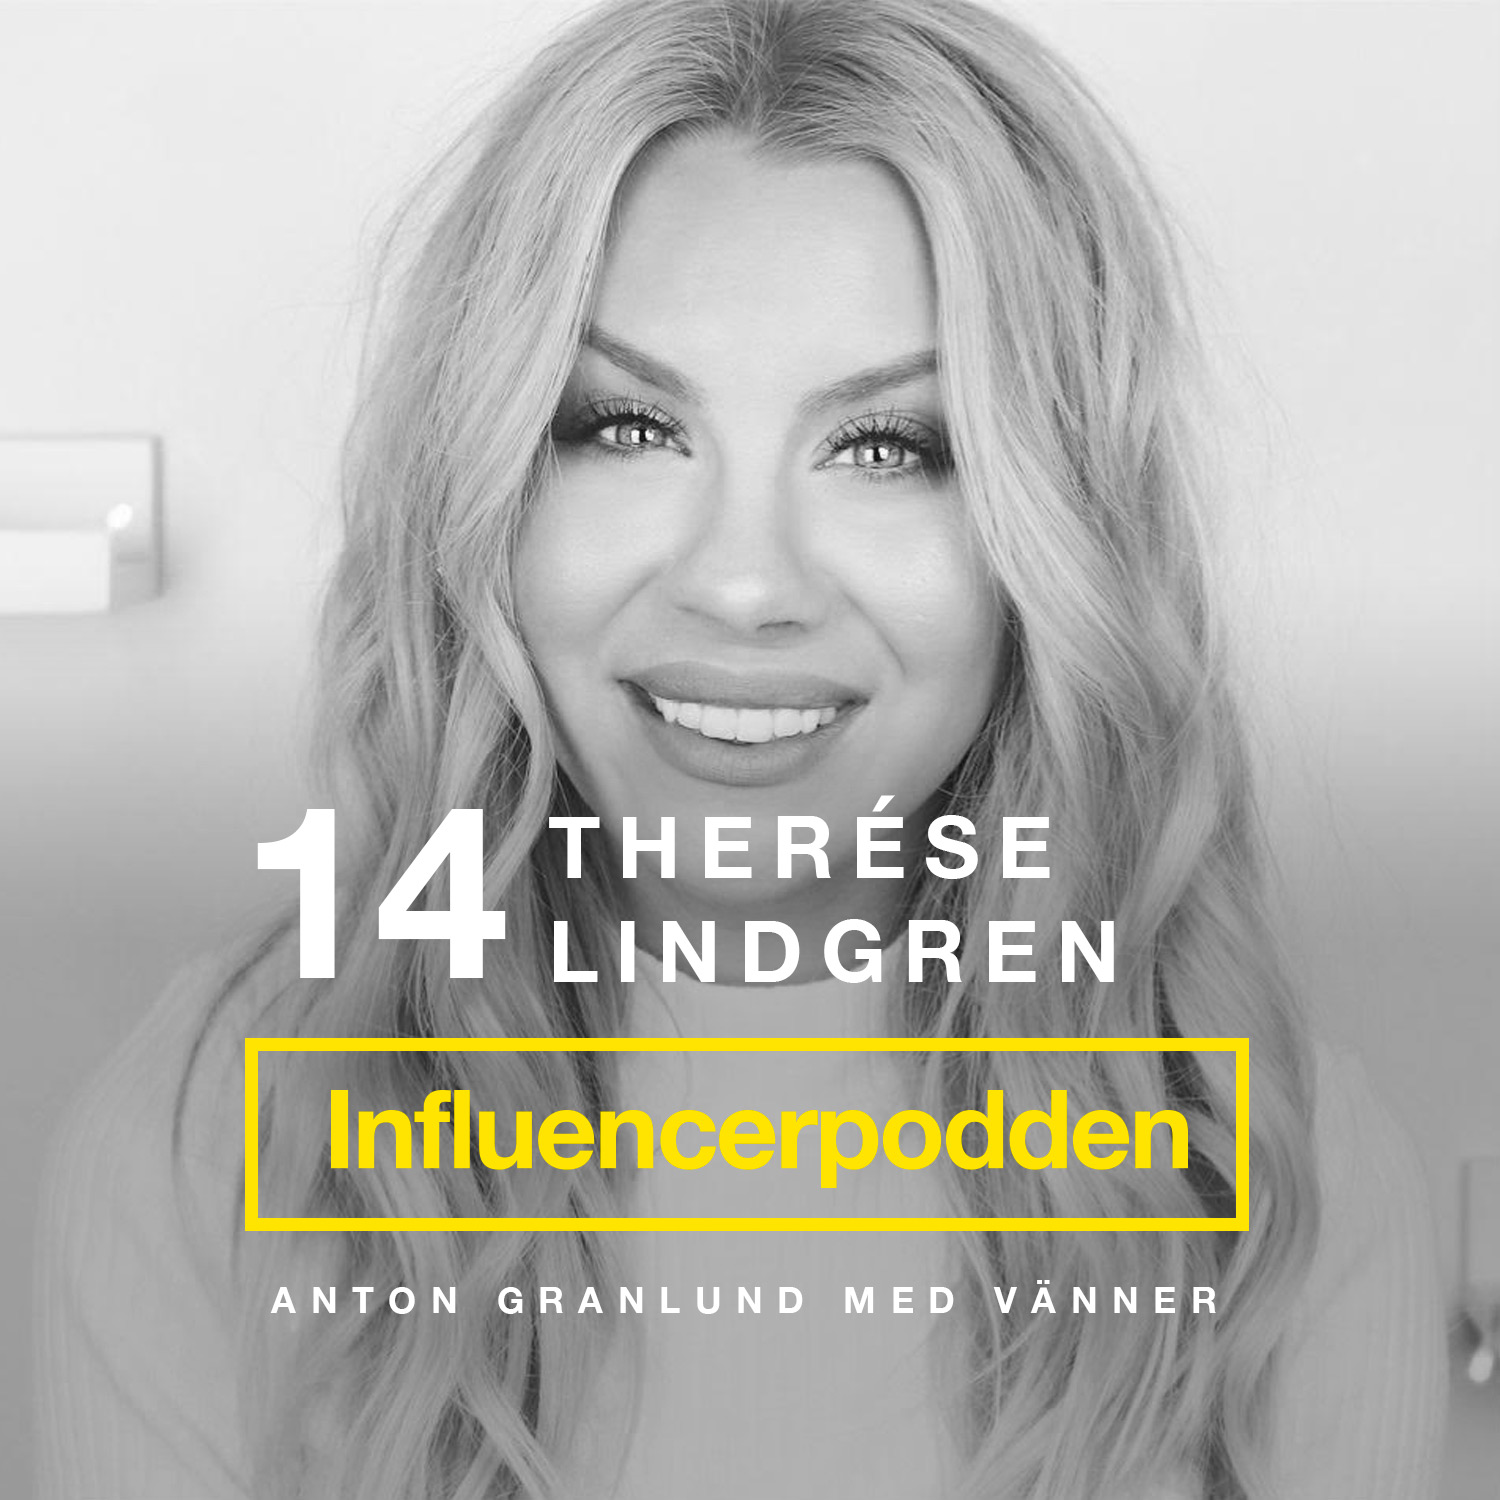 14. Therese Lindgren